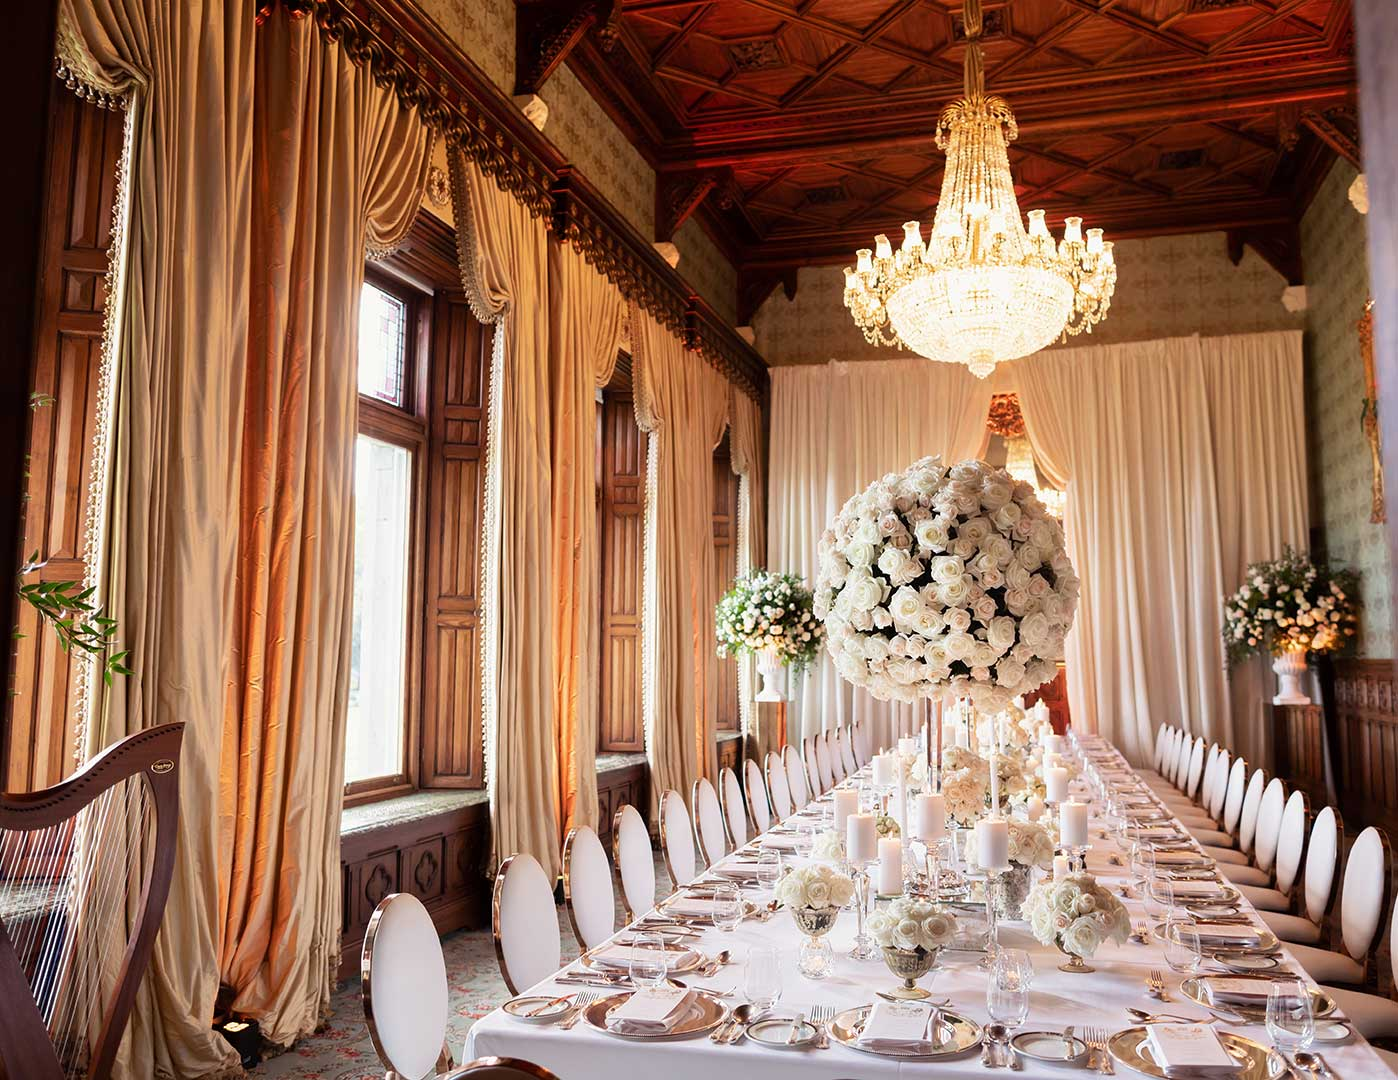 Destination Weddings Ireland, Ashford Castle, Olivia Buckley International, Wedding planners in Ireland, Event Planners in Ireland, Connaught Room dinner